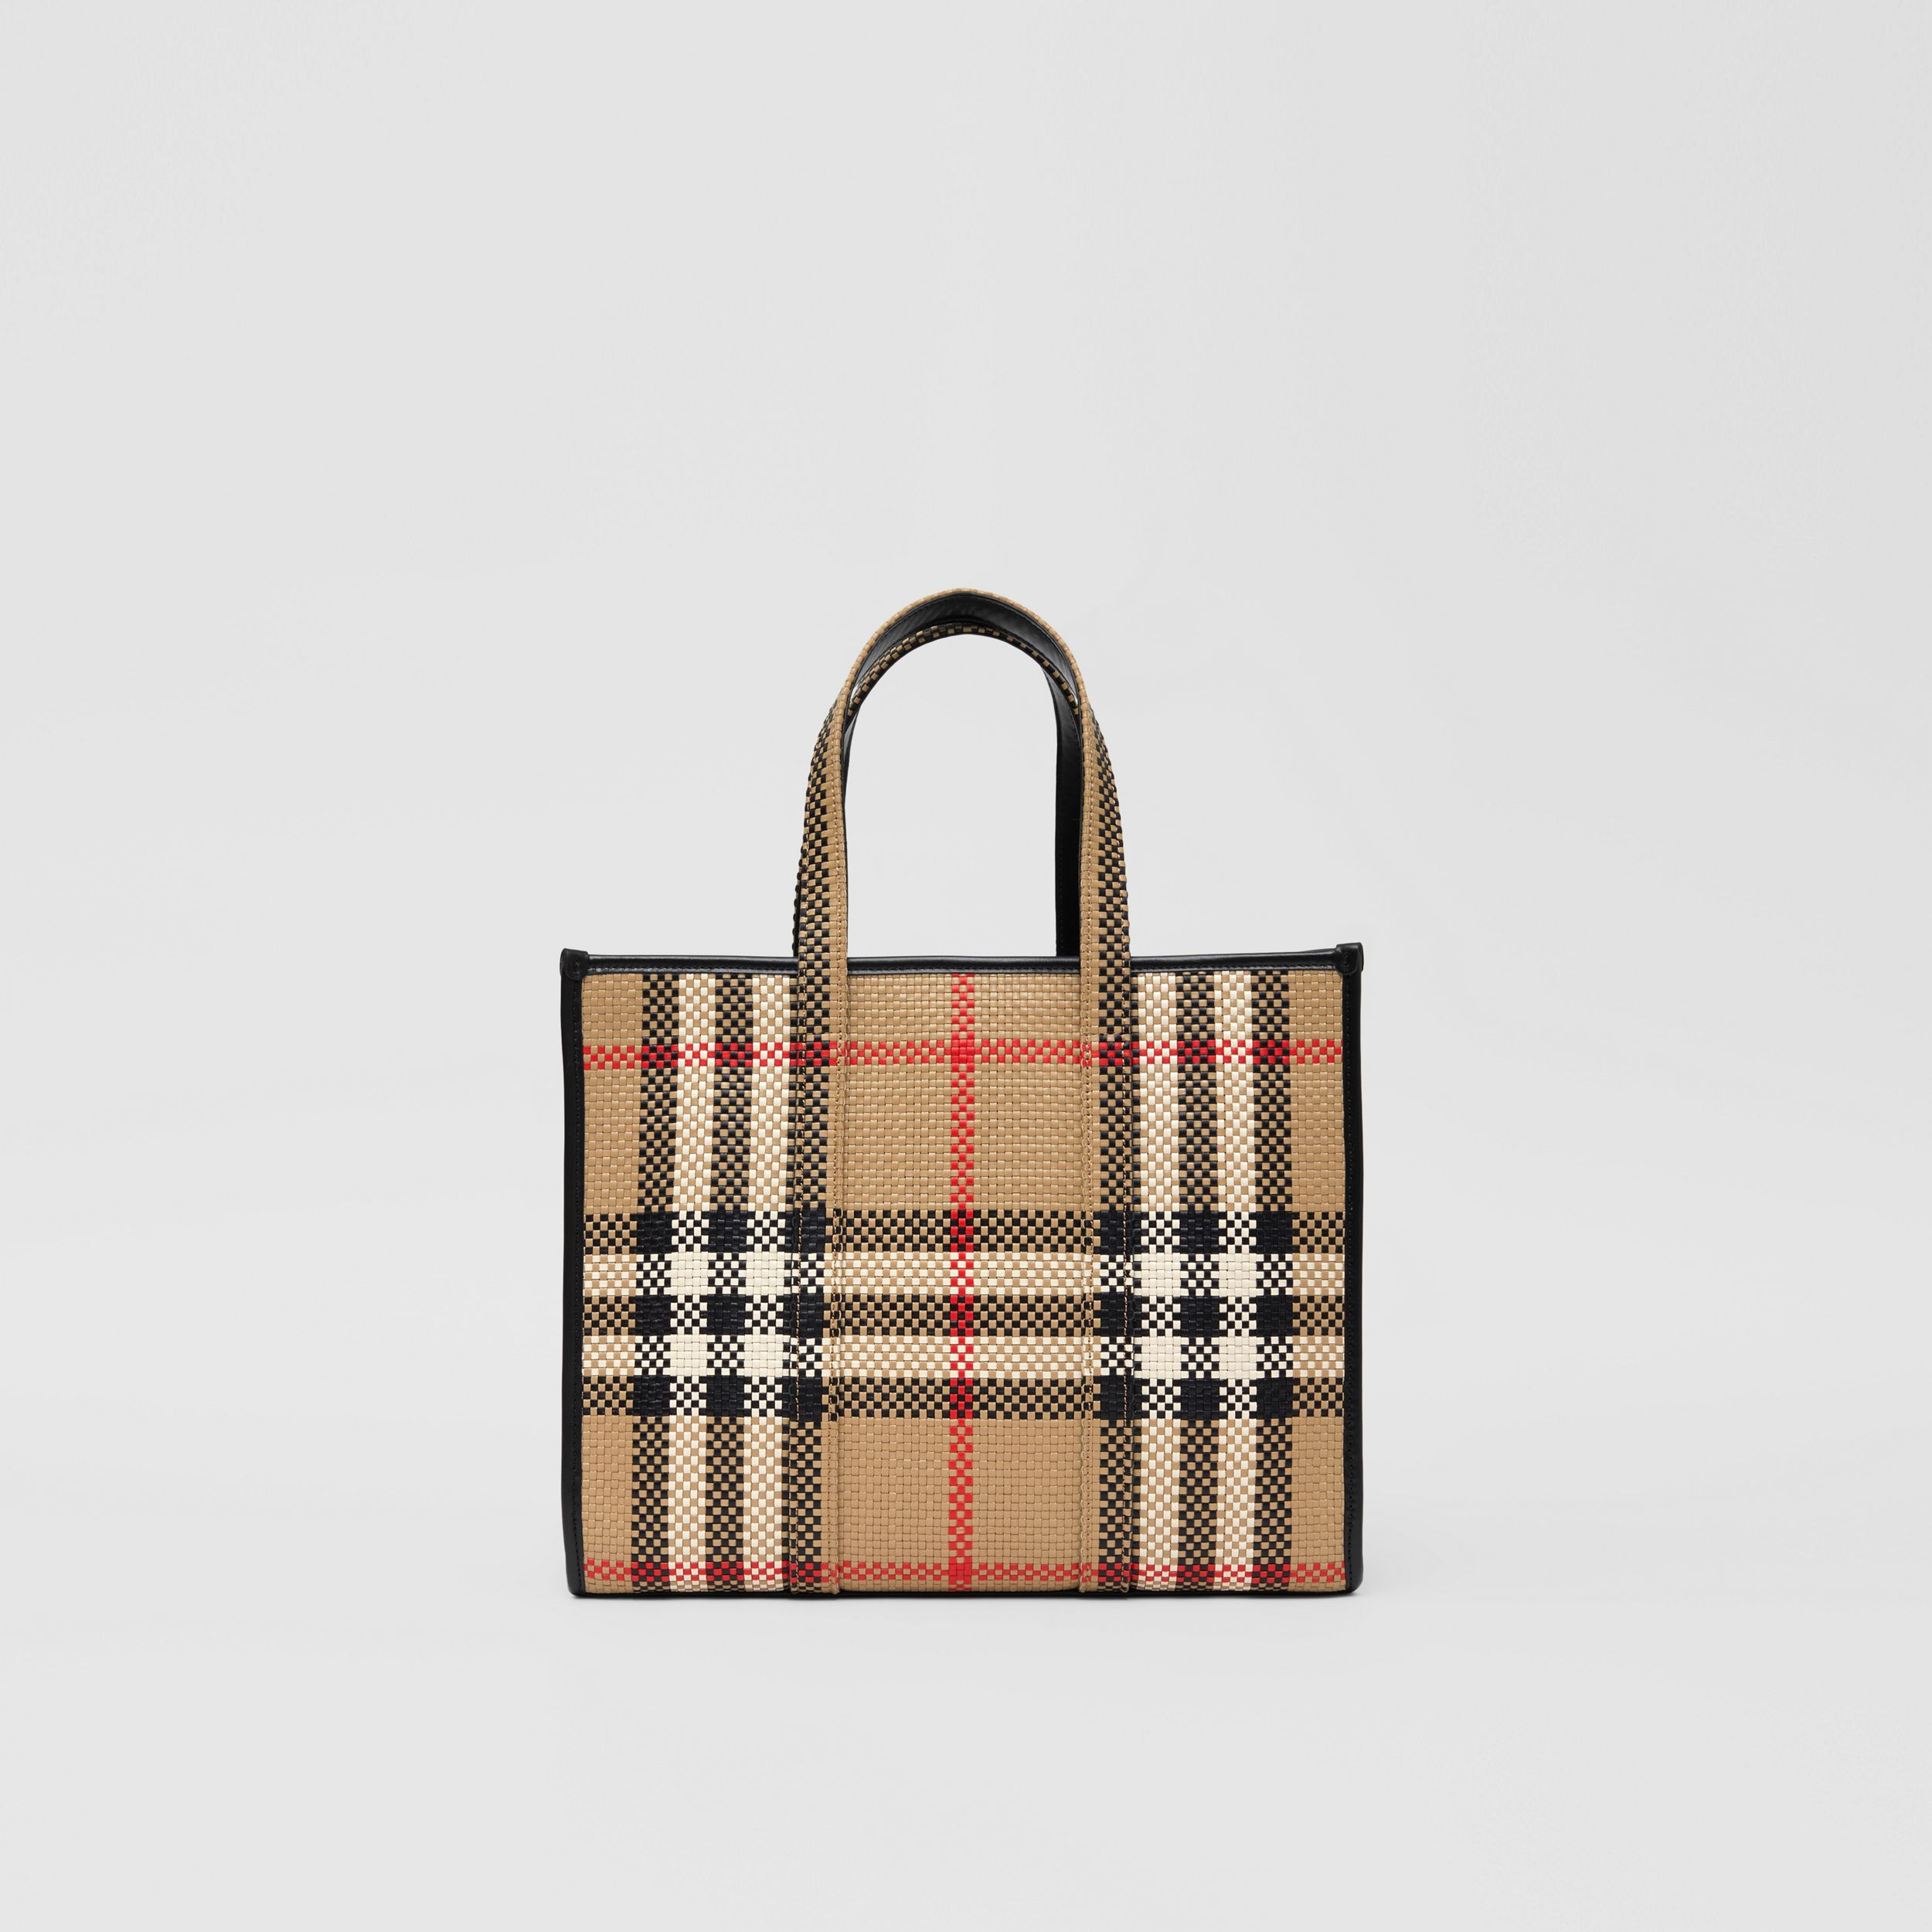 Small Latticed Leather Tote Bag in Archive Beige - Women | Burberry Hong Kong S.A.R. - 1